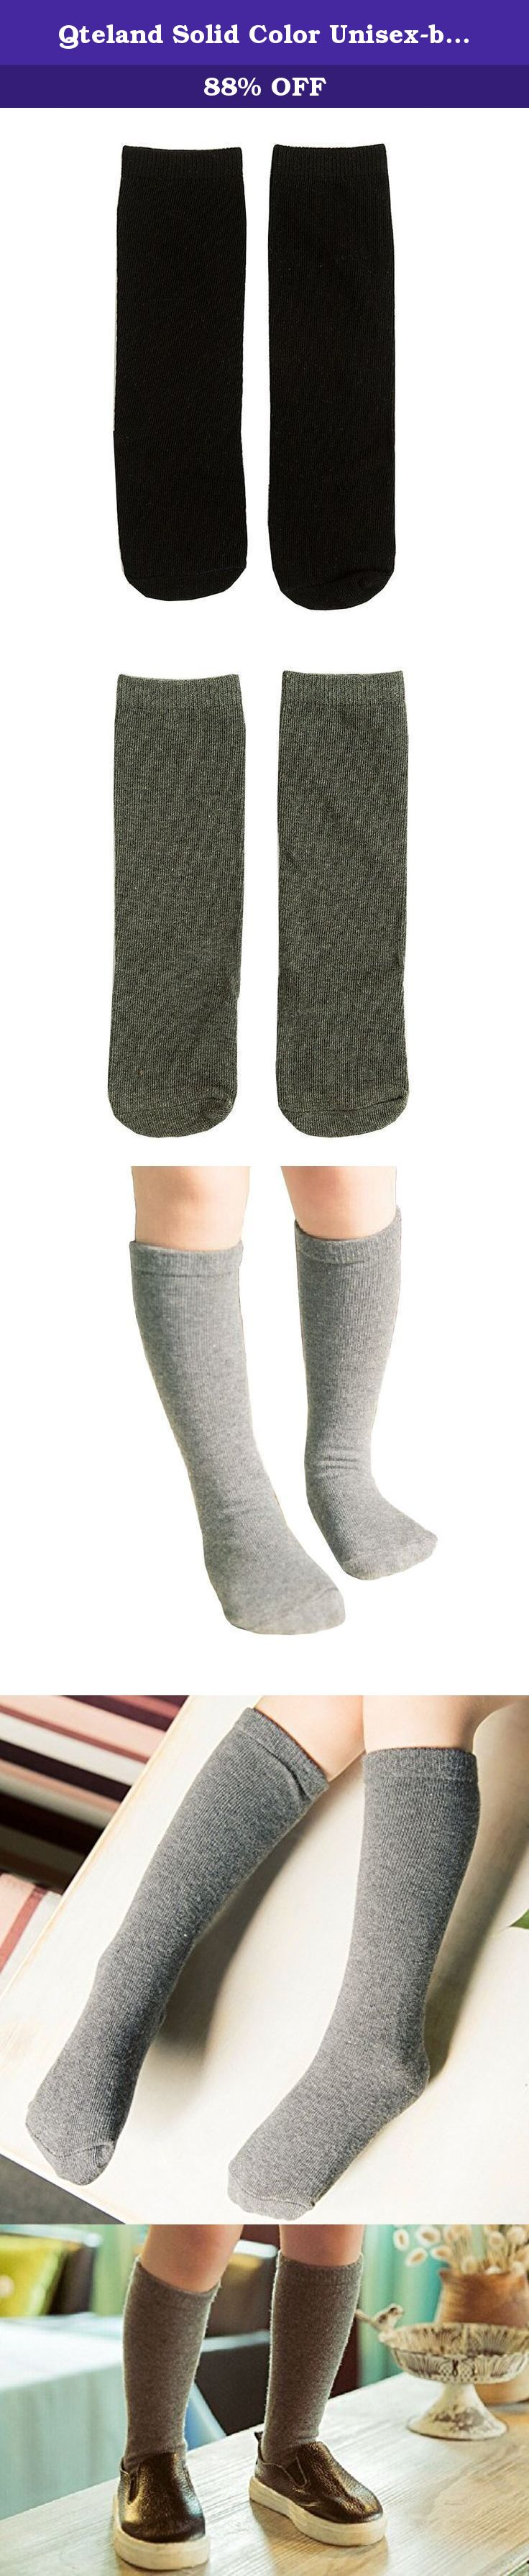 Qteland Solid Color Unisex-baby Knee High Socks Tube socks for Kids 2-pack. Qteland Cotton high knee socks for Babies are an adorable and fashion item dress up your little one. Look for all of our adorable high knee socks! Available in stripes, Geometry,fox,cat,Mickey Mouse,bear, rabbit and so on. A material composition for comfort these socks are made of 75% cotton, 20% polyester, and 5% spandex for a snug, comfortable fit. Three size for your choose Size S: 0-12 mo, length of sole:3-4...